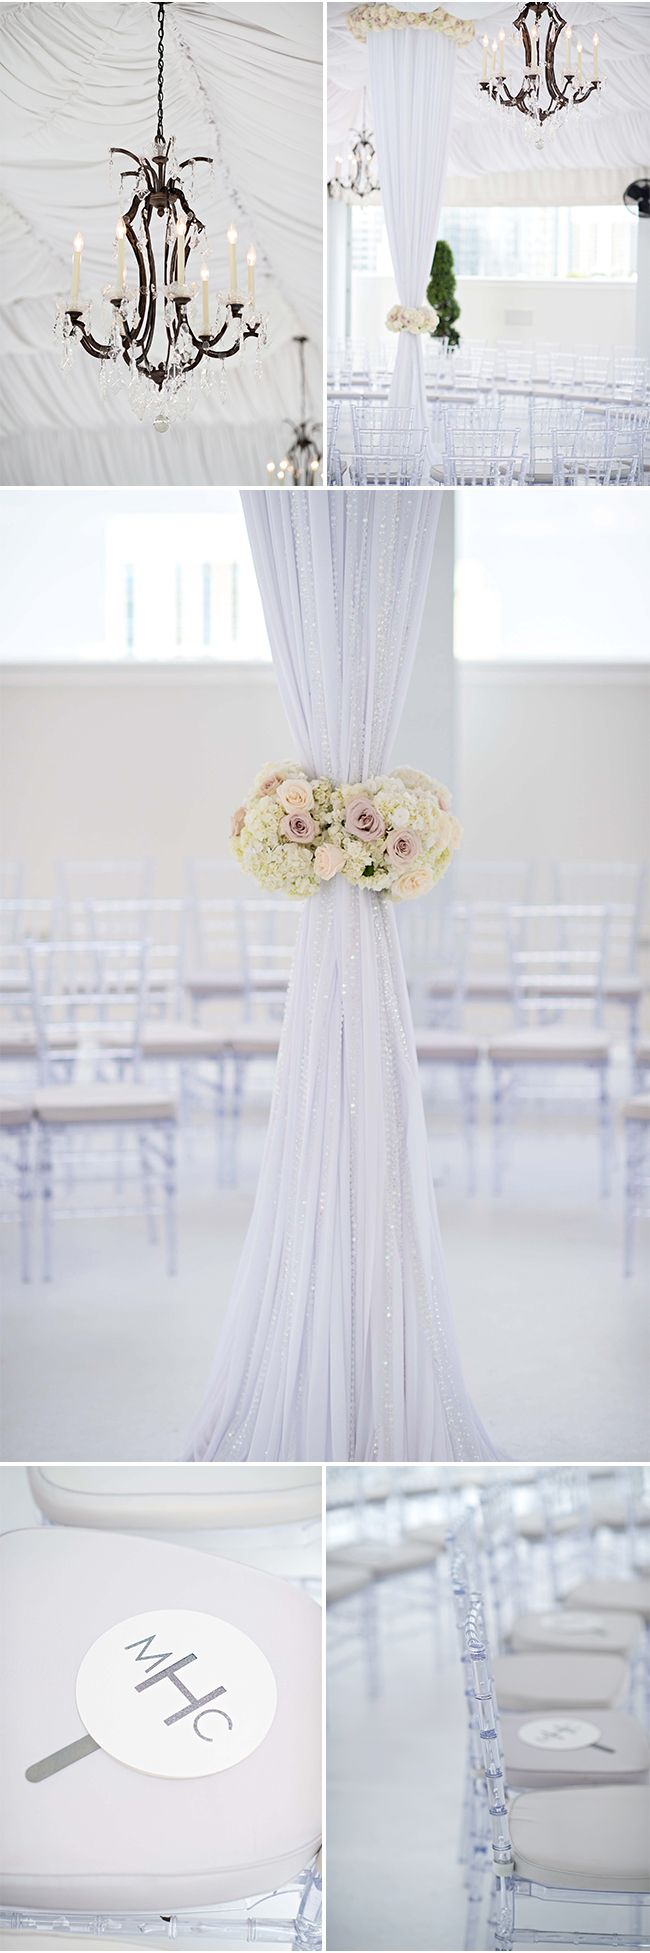 31 best Clean & Classic Weddings images on Pinterest | Table centers ...